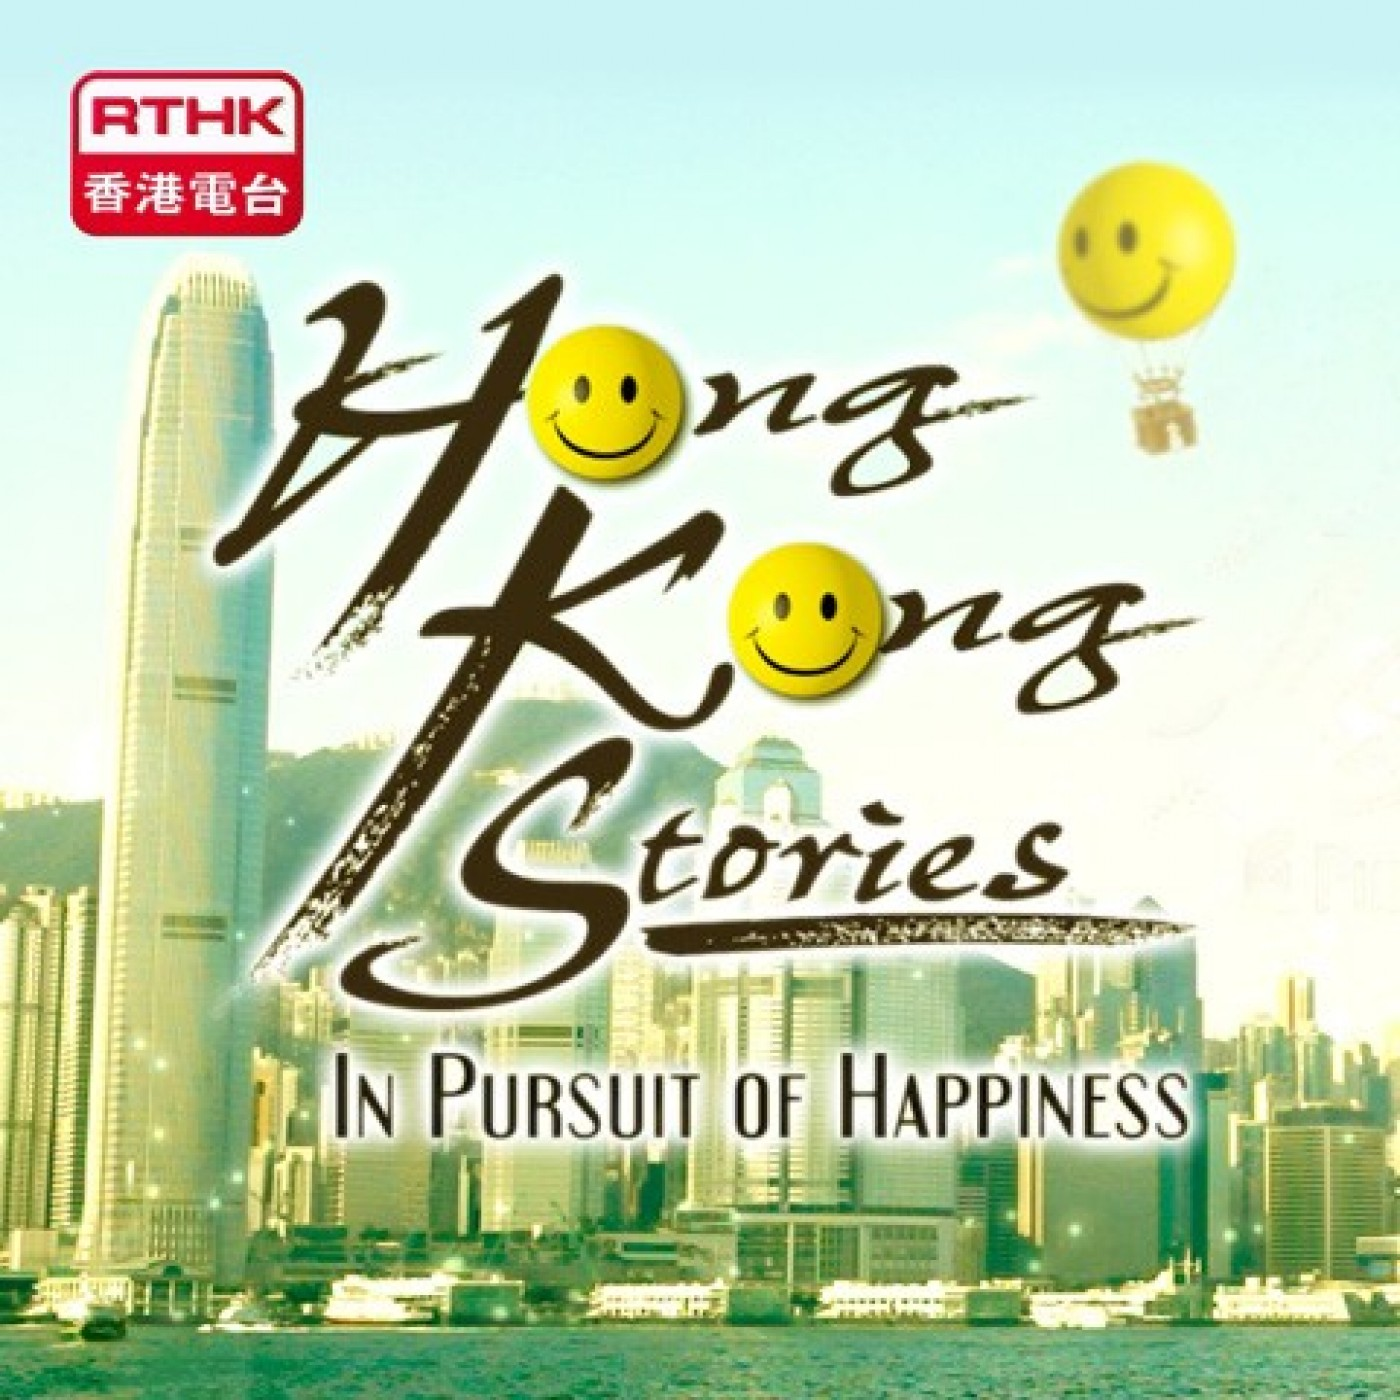 Hong Kong Stories  -  In Pursuit of Happiness